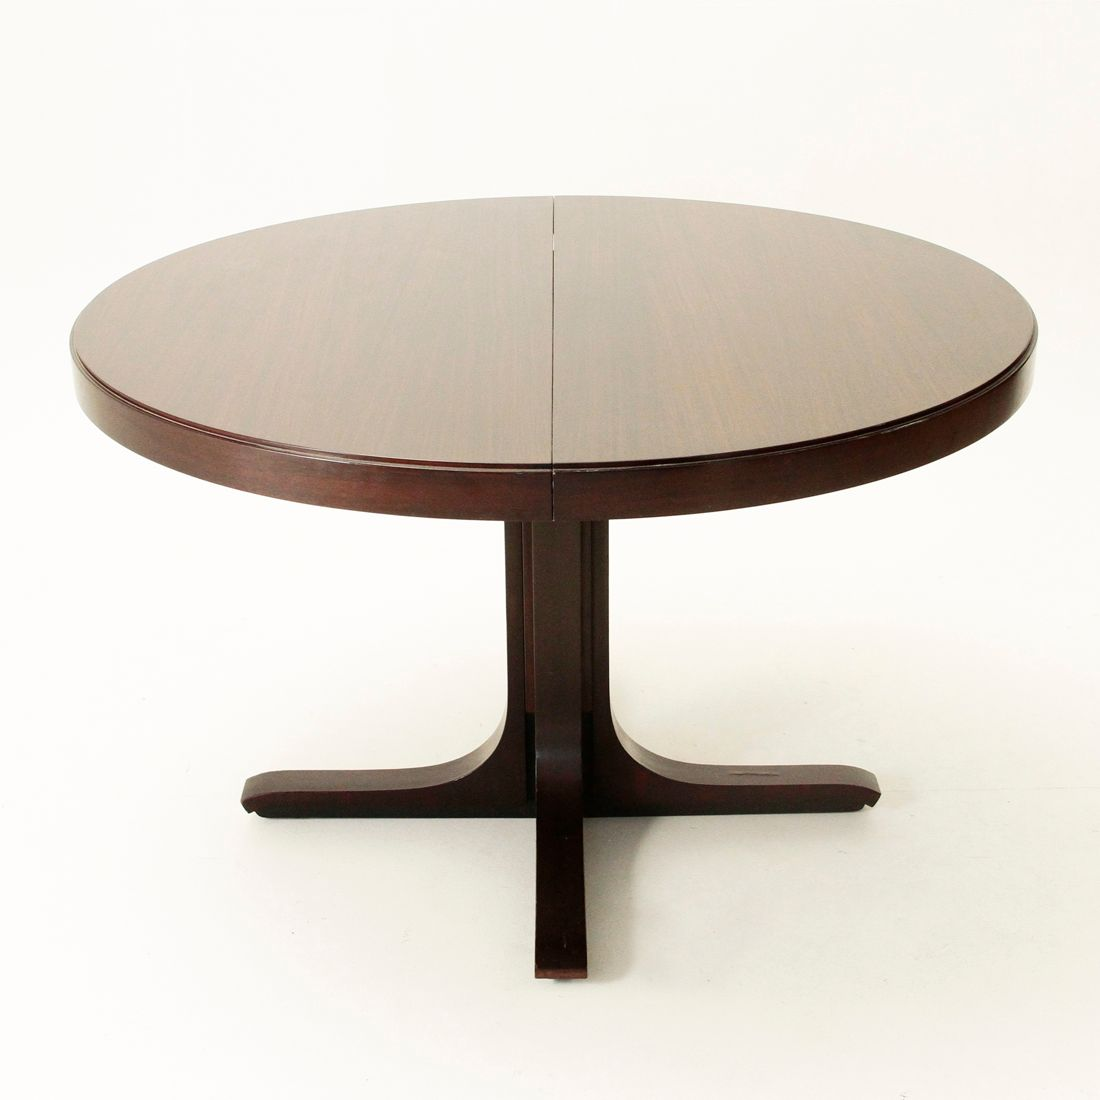 Extensible dining table by giovanni ausenda for stilwood for Table exterieure extensible